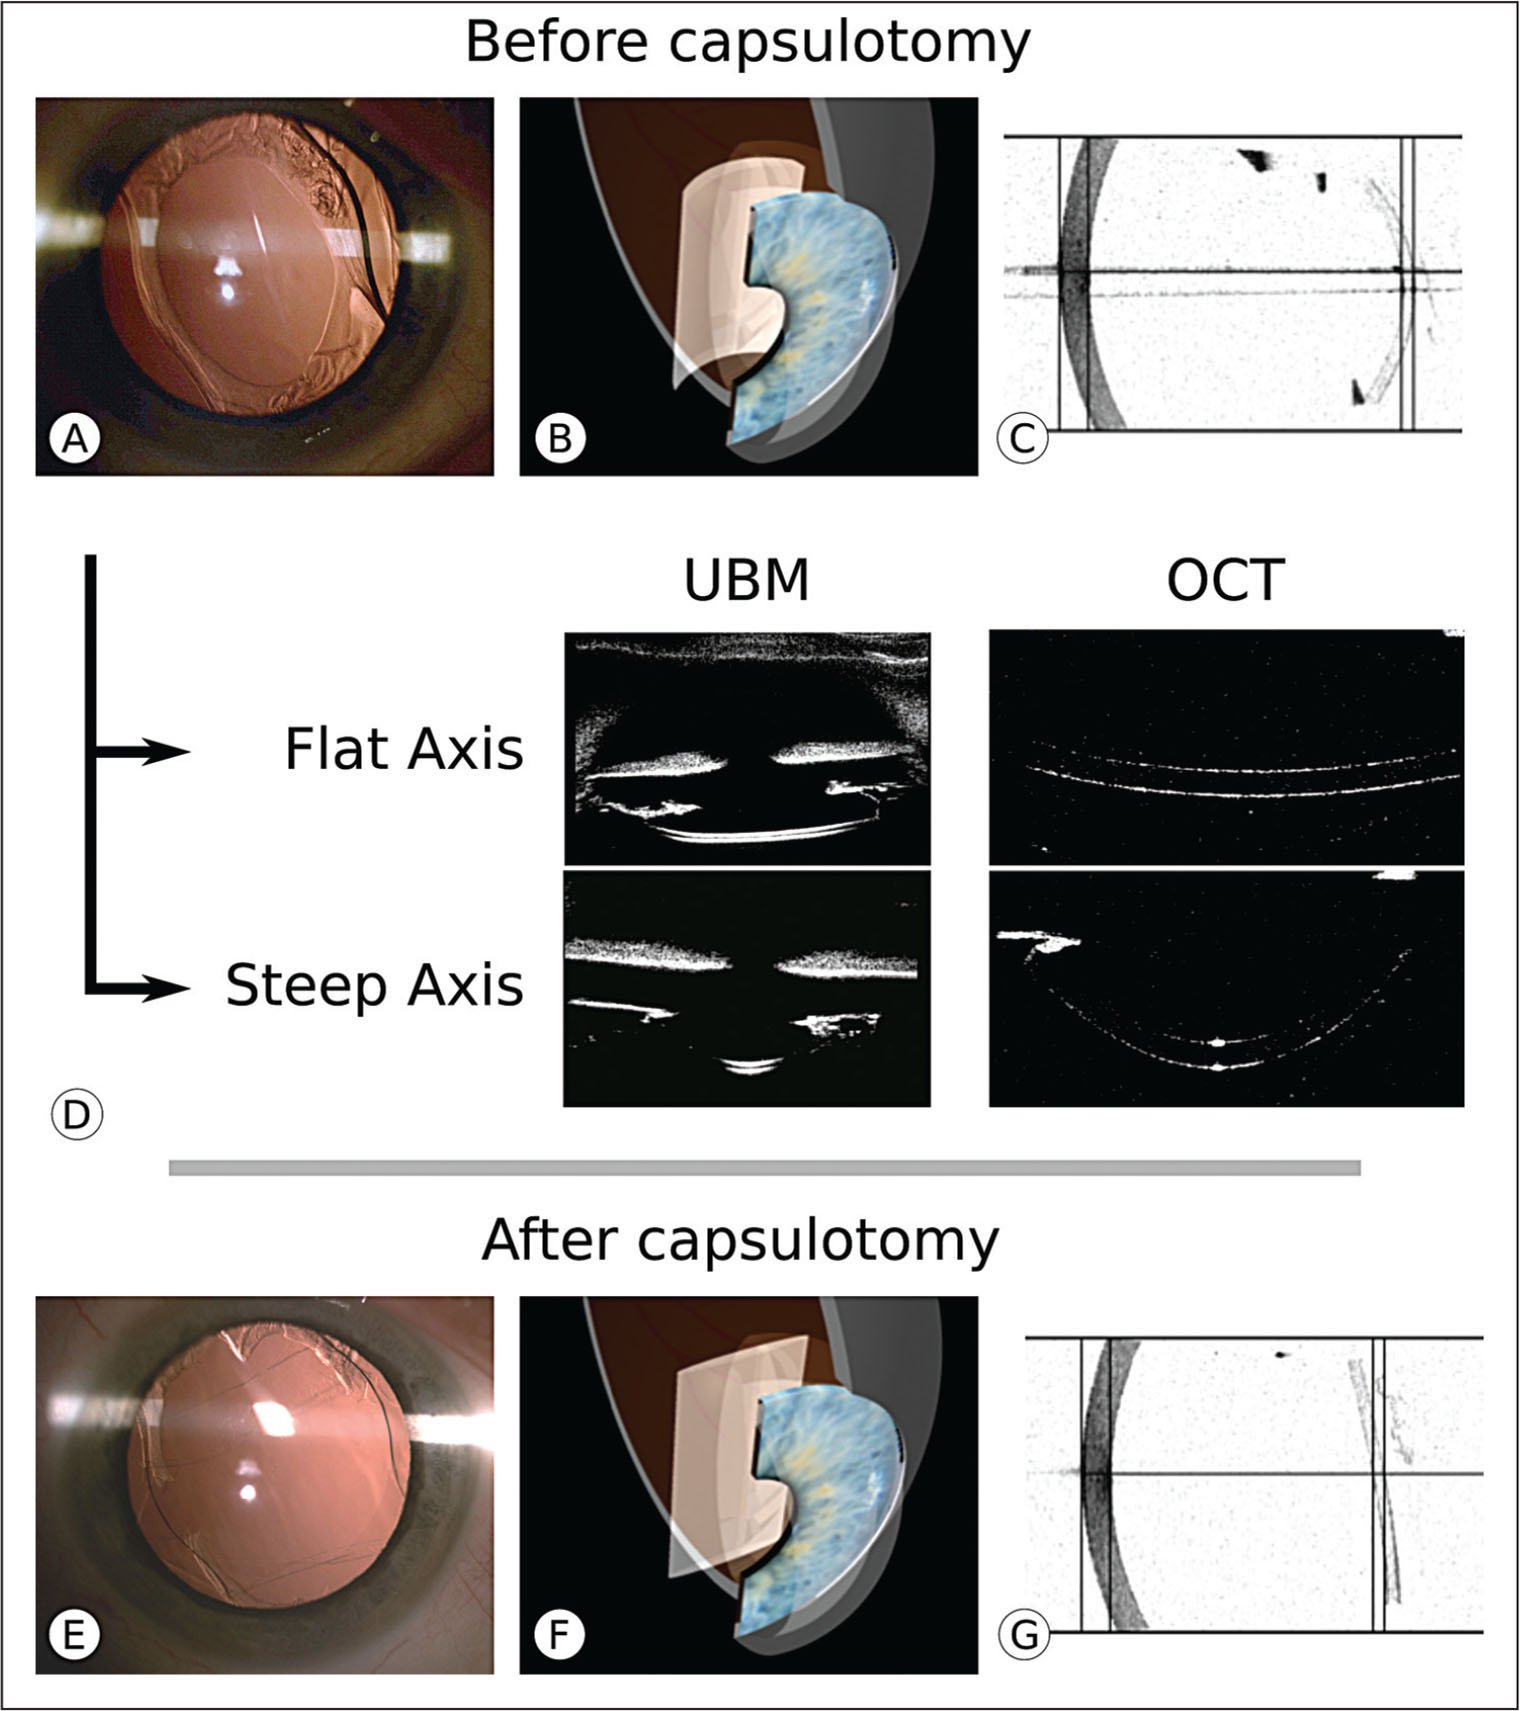 Multimodal imaging and modeling of the intraocular lens (IOL) (A–D) before and (E–G) after capsulotomy. (A) Slit-lamp photograph shows the oval-shaped anterior capsulotomy and capsule fibrosis that are predominant in the inferior and superior regions. Cross-sections of flat and steep axes of the IOL are imaged using ultrasound biomicroscopy (UBM) (D left column) and Visante optical coherence tomography (OCT) (Carl Zeiss Meditec AG, Jena, Germany) (D right column). IOL shape is modeled in three dimensions (B). IOLMaster 700 swept-source OCT (Carl Zeiss Meditec AG) (C) shows a horizontal cross-section of the IOL before capsulotomy. After capsulotomy, (E) slit-lamp photograph, (F) three-dimensional modeling, and (G) IOLMaster 700 swept-source OCT show restoration of normal shape of IOL. (Illustrations by Damien Gatinel).